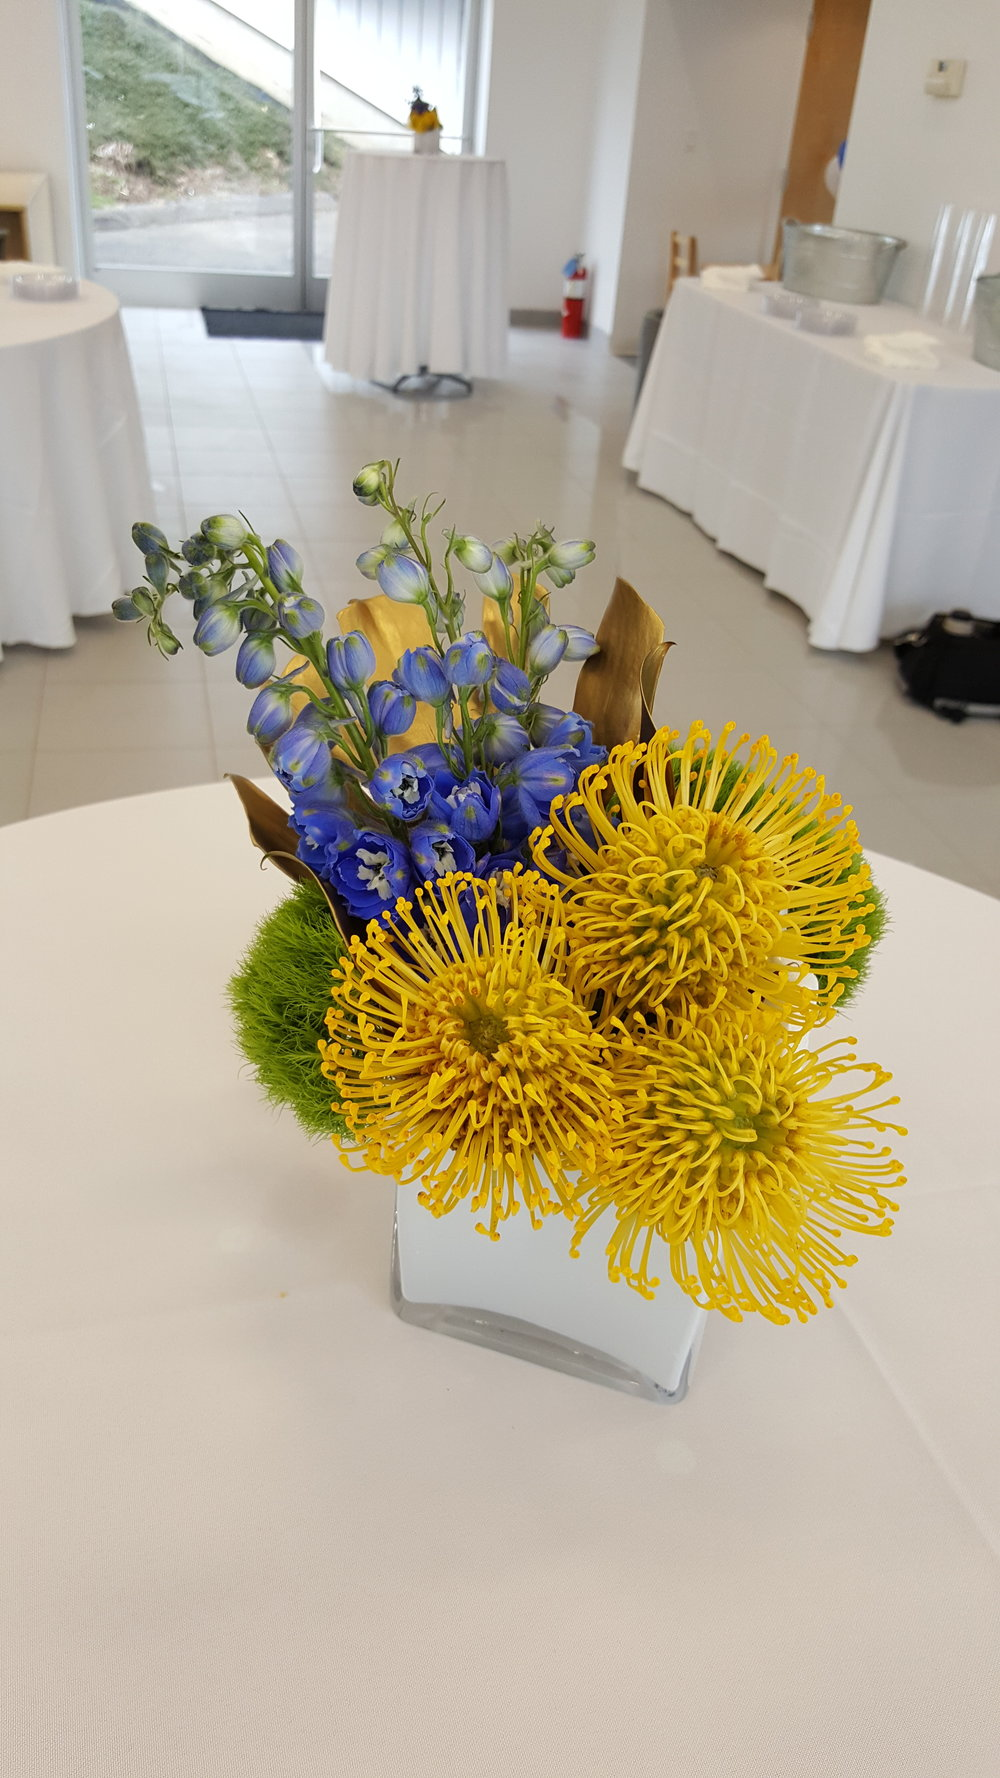 Purple and yellow flowers in a short vase for corporate or restaurant decor